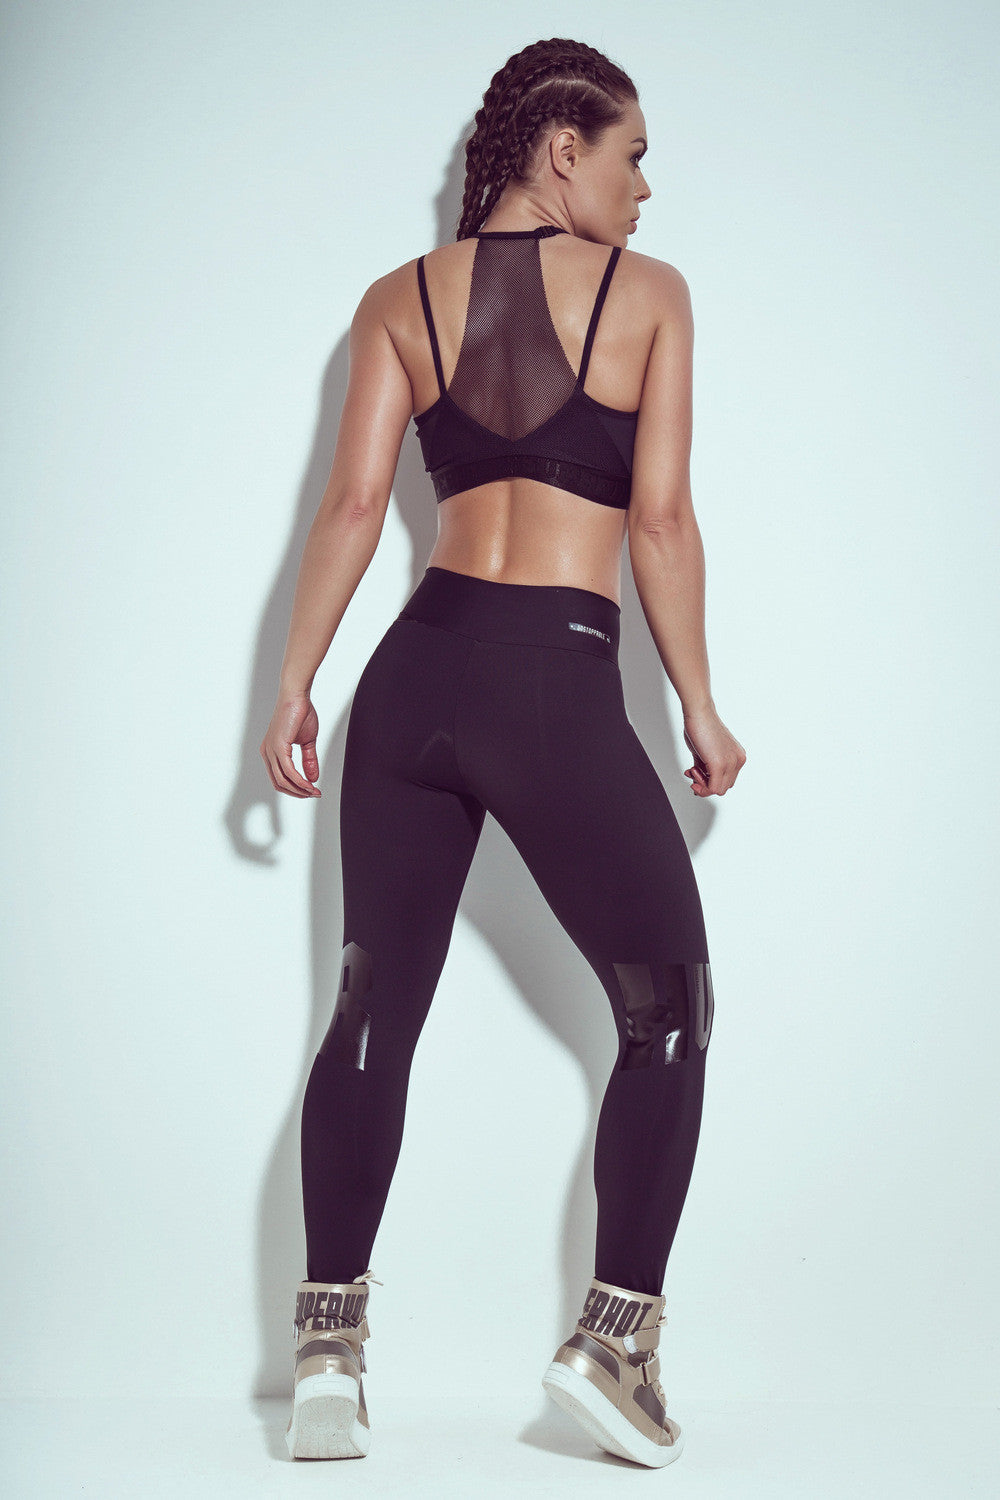 LEGGING SUPERHOT HUSTLE HARDER - BLACK - SUPERHOT - FitZee